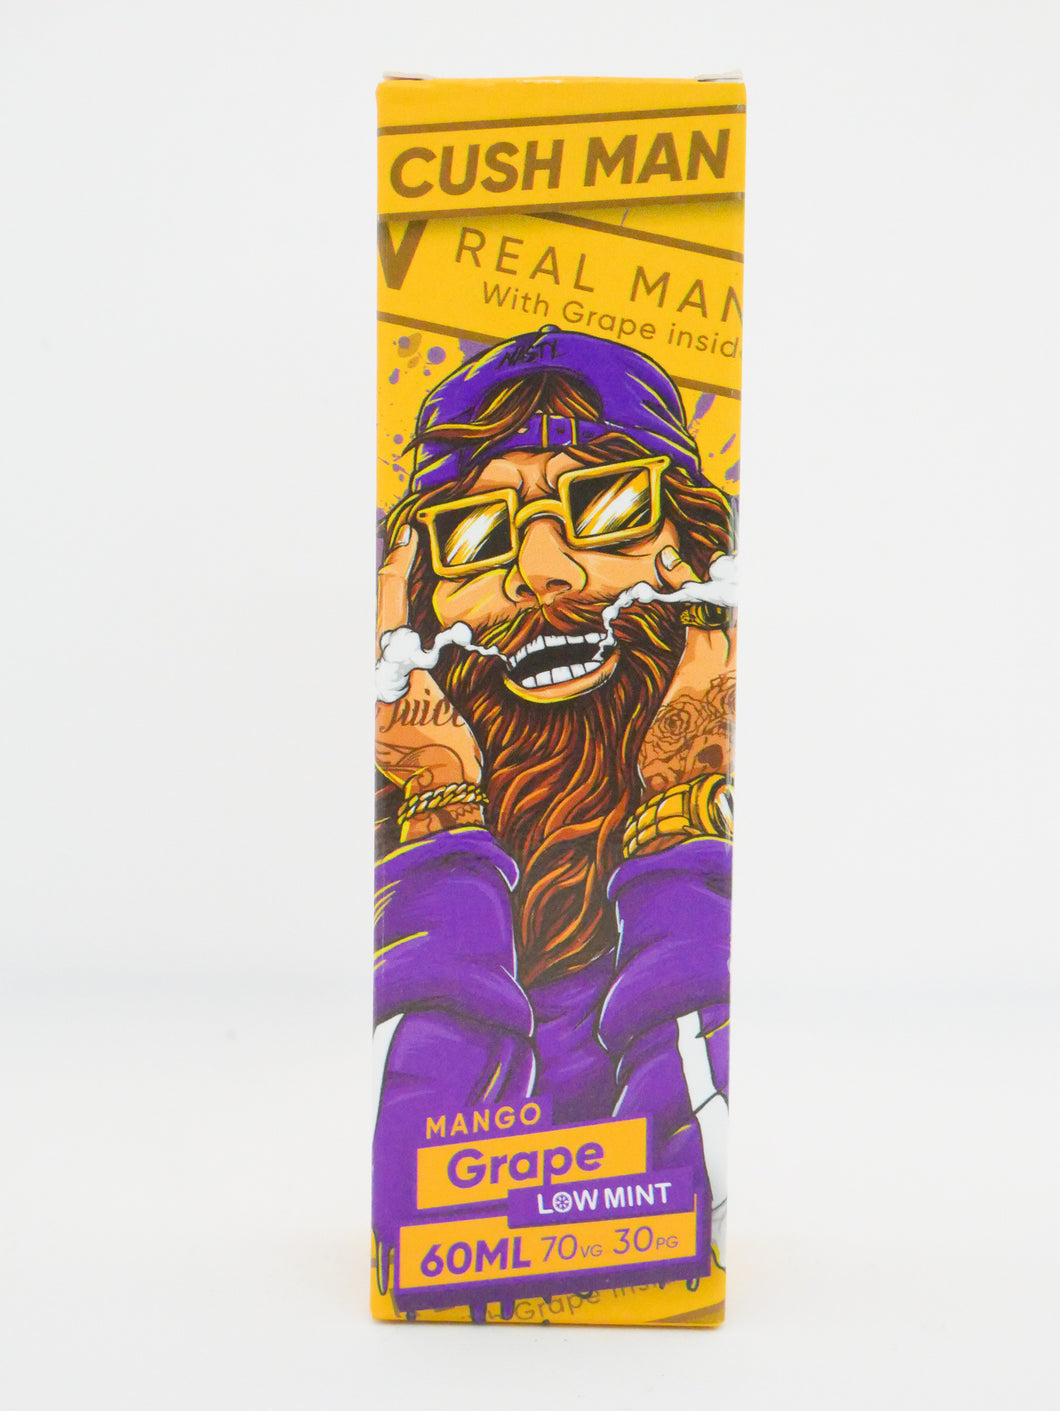 Nasty Juice Grape Mango Cush Man Series E Liquid UK Online Vape Shop UK